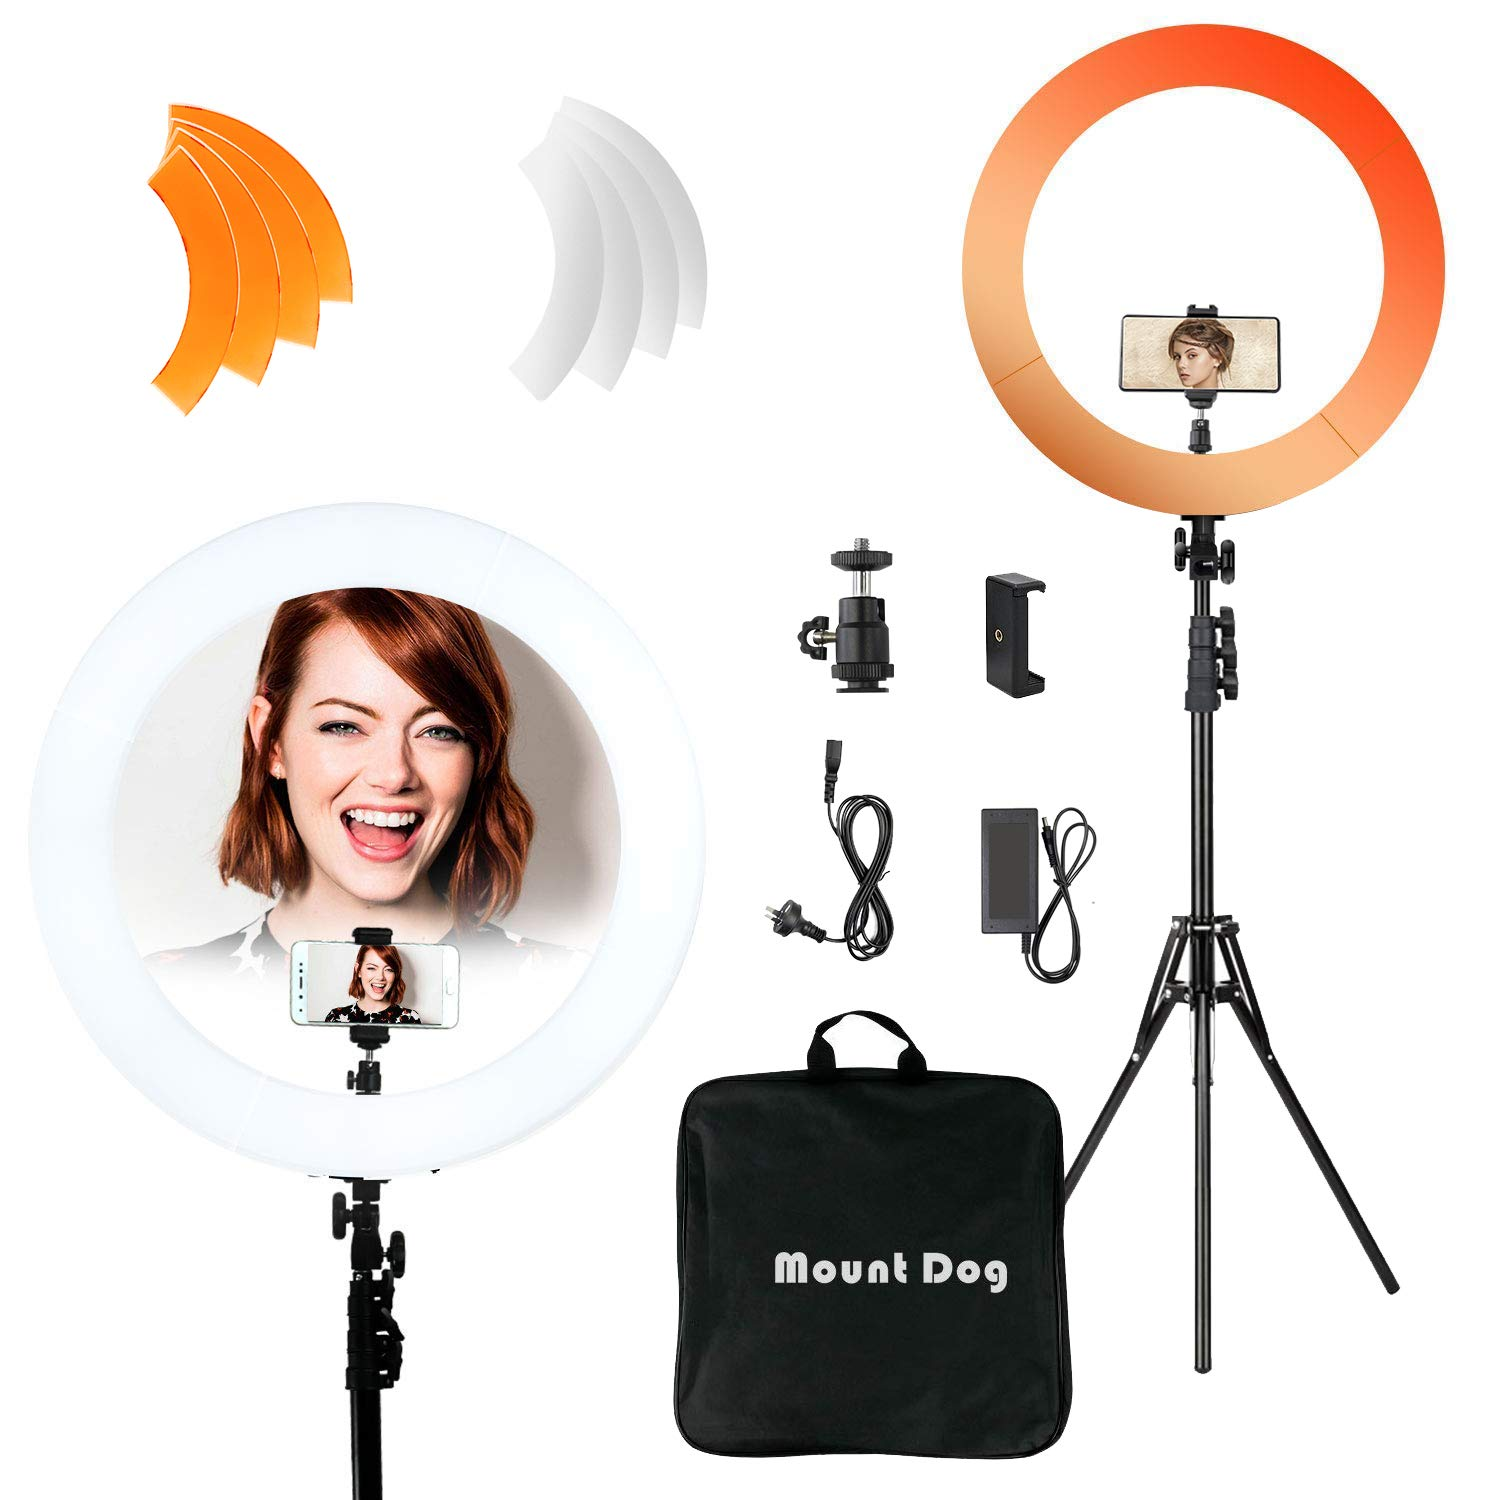 MOUNTDOG 18''/48cm YouTube Ring Light 55W 5500K Dimmable LED Ringlight Kit with Tripod Stand Circle Lighting for Video Filming Portrait Makeup